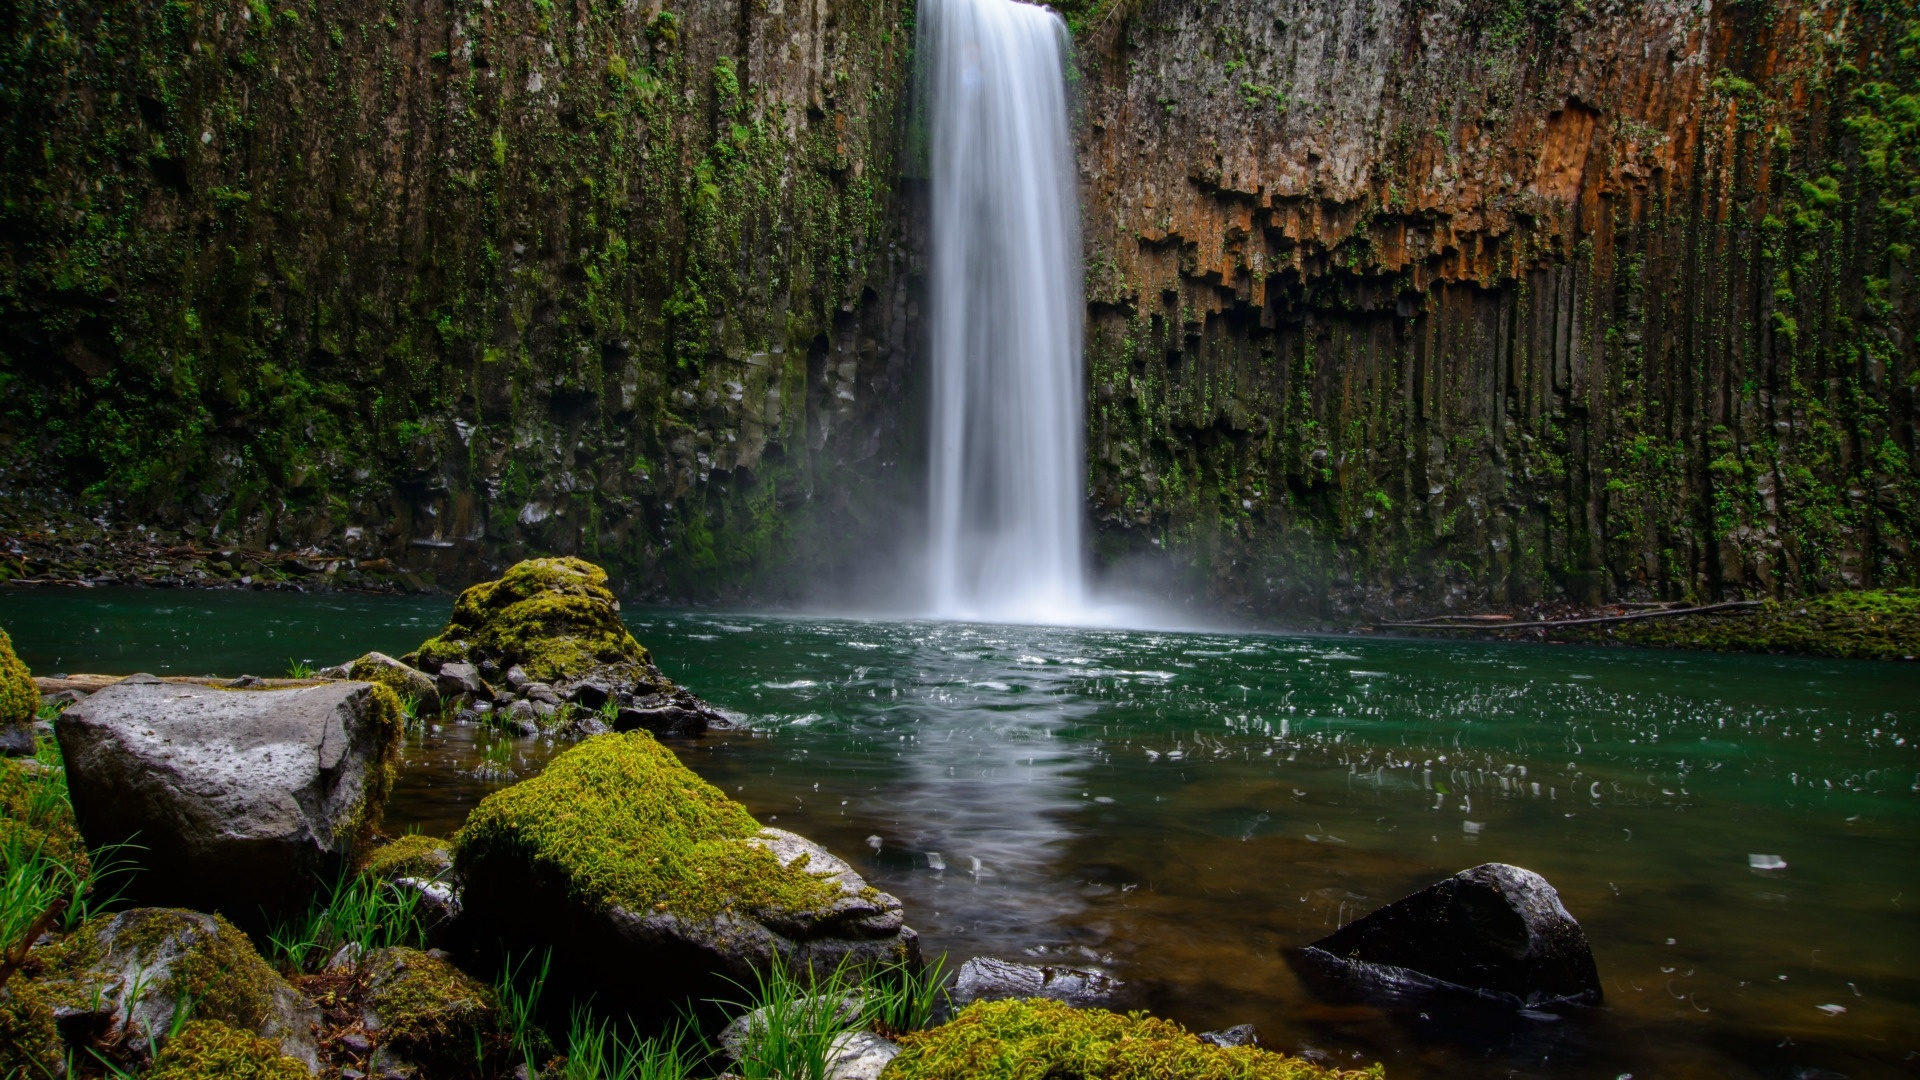 Forest Waterfall Wallpaper theme